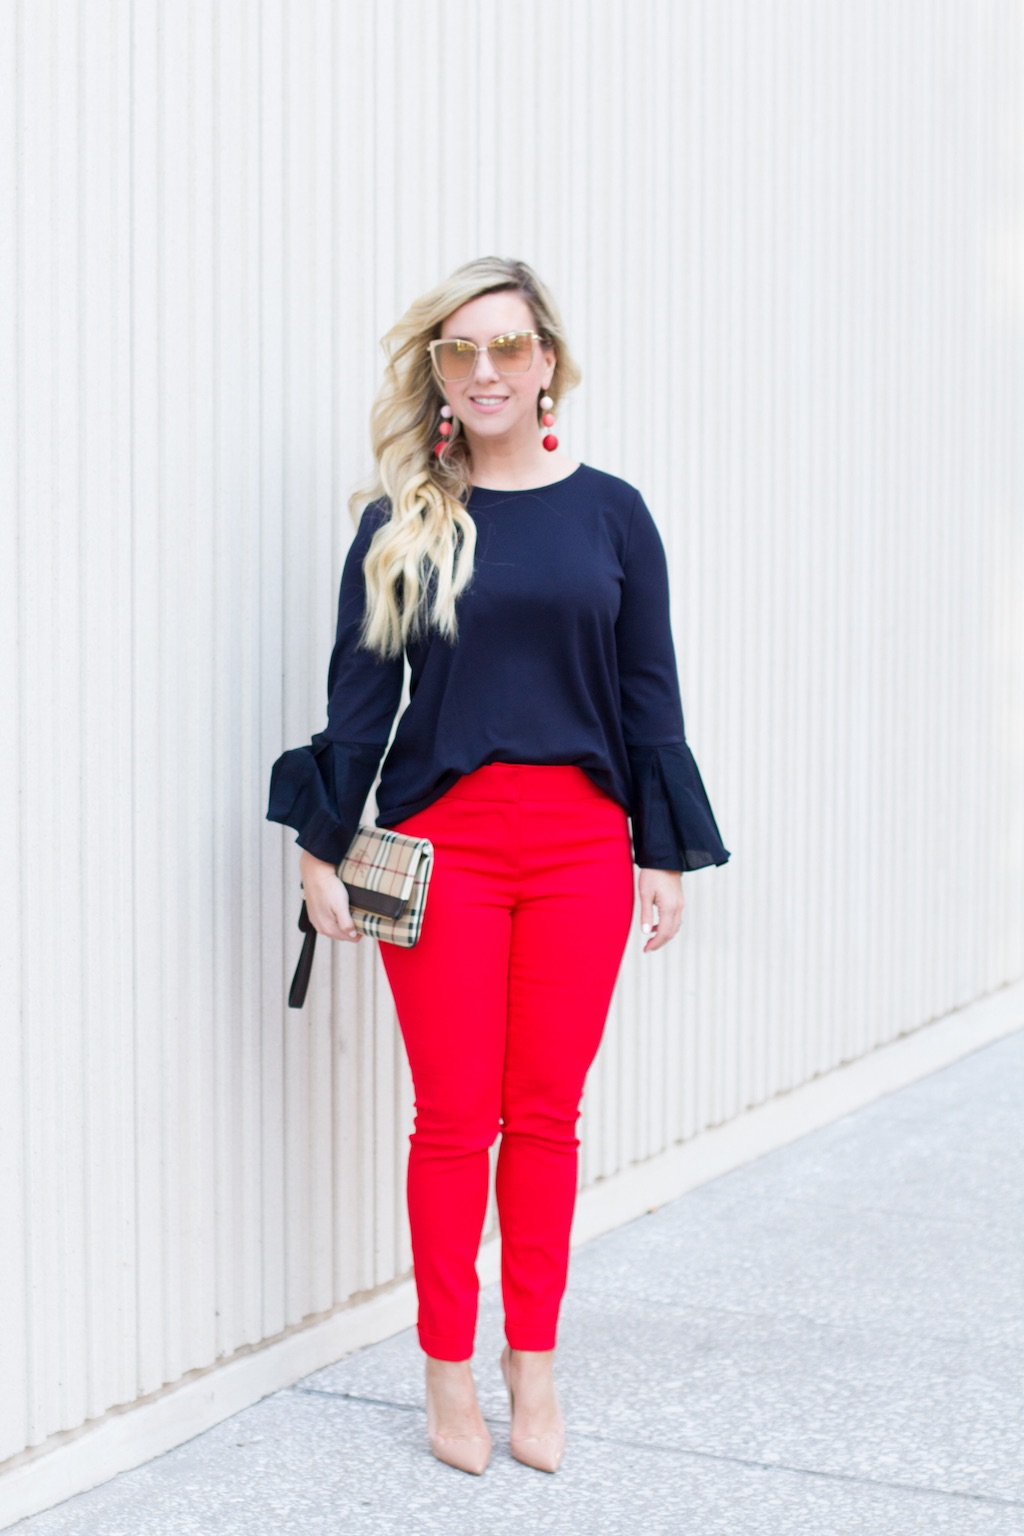 Red Hot, Red Pants | Spring Look | The Darling Petite Diva